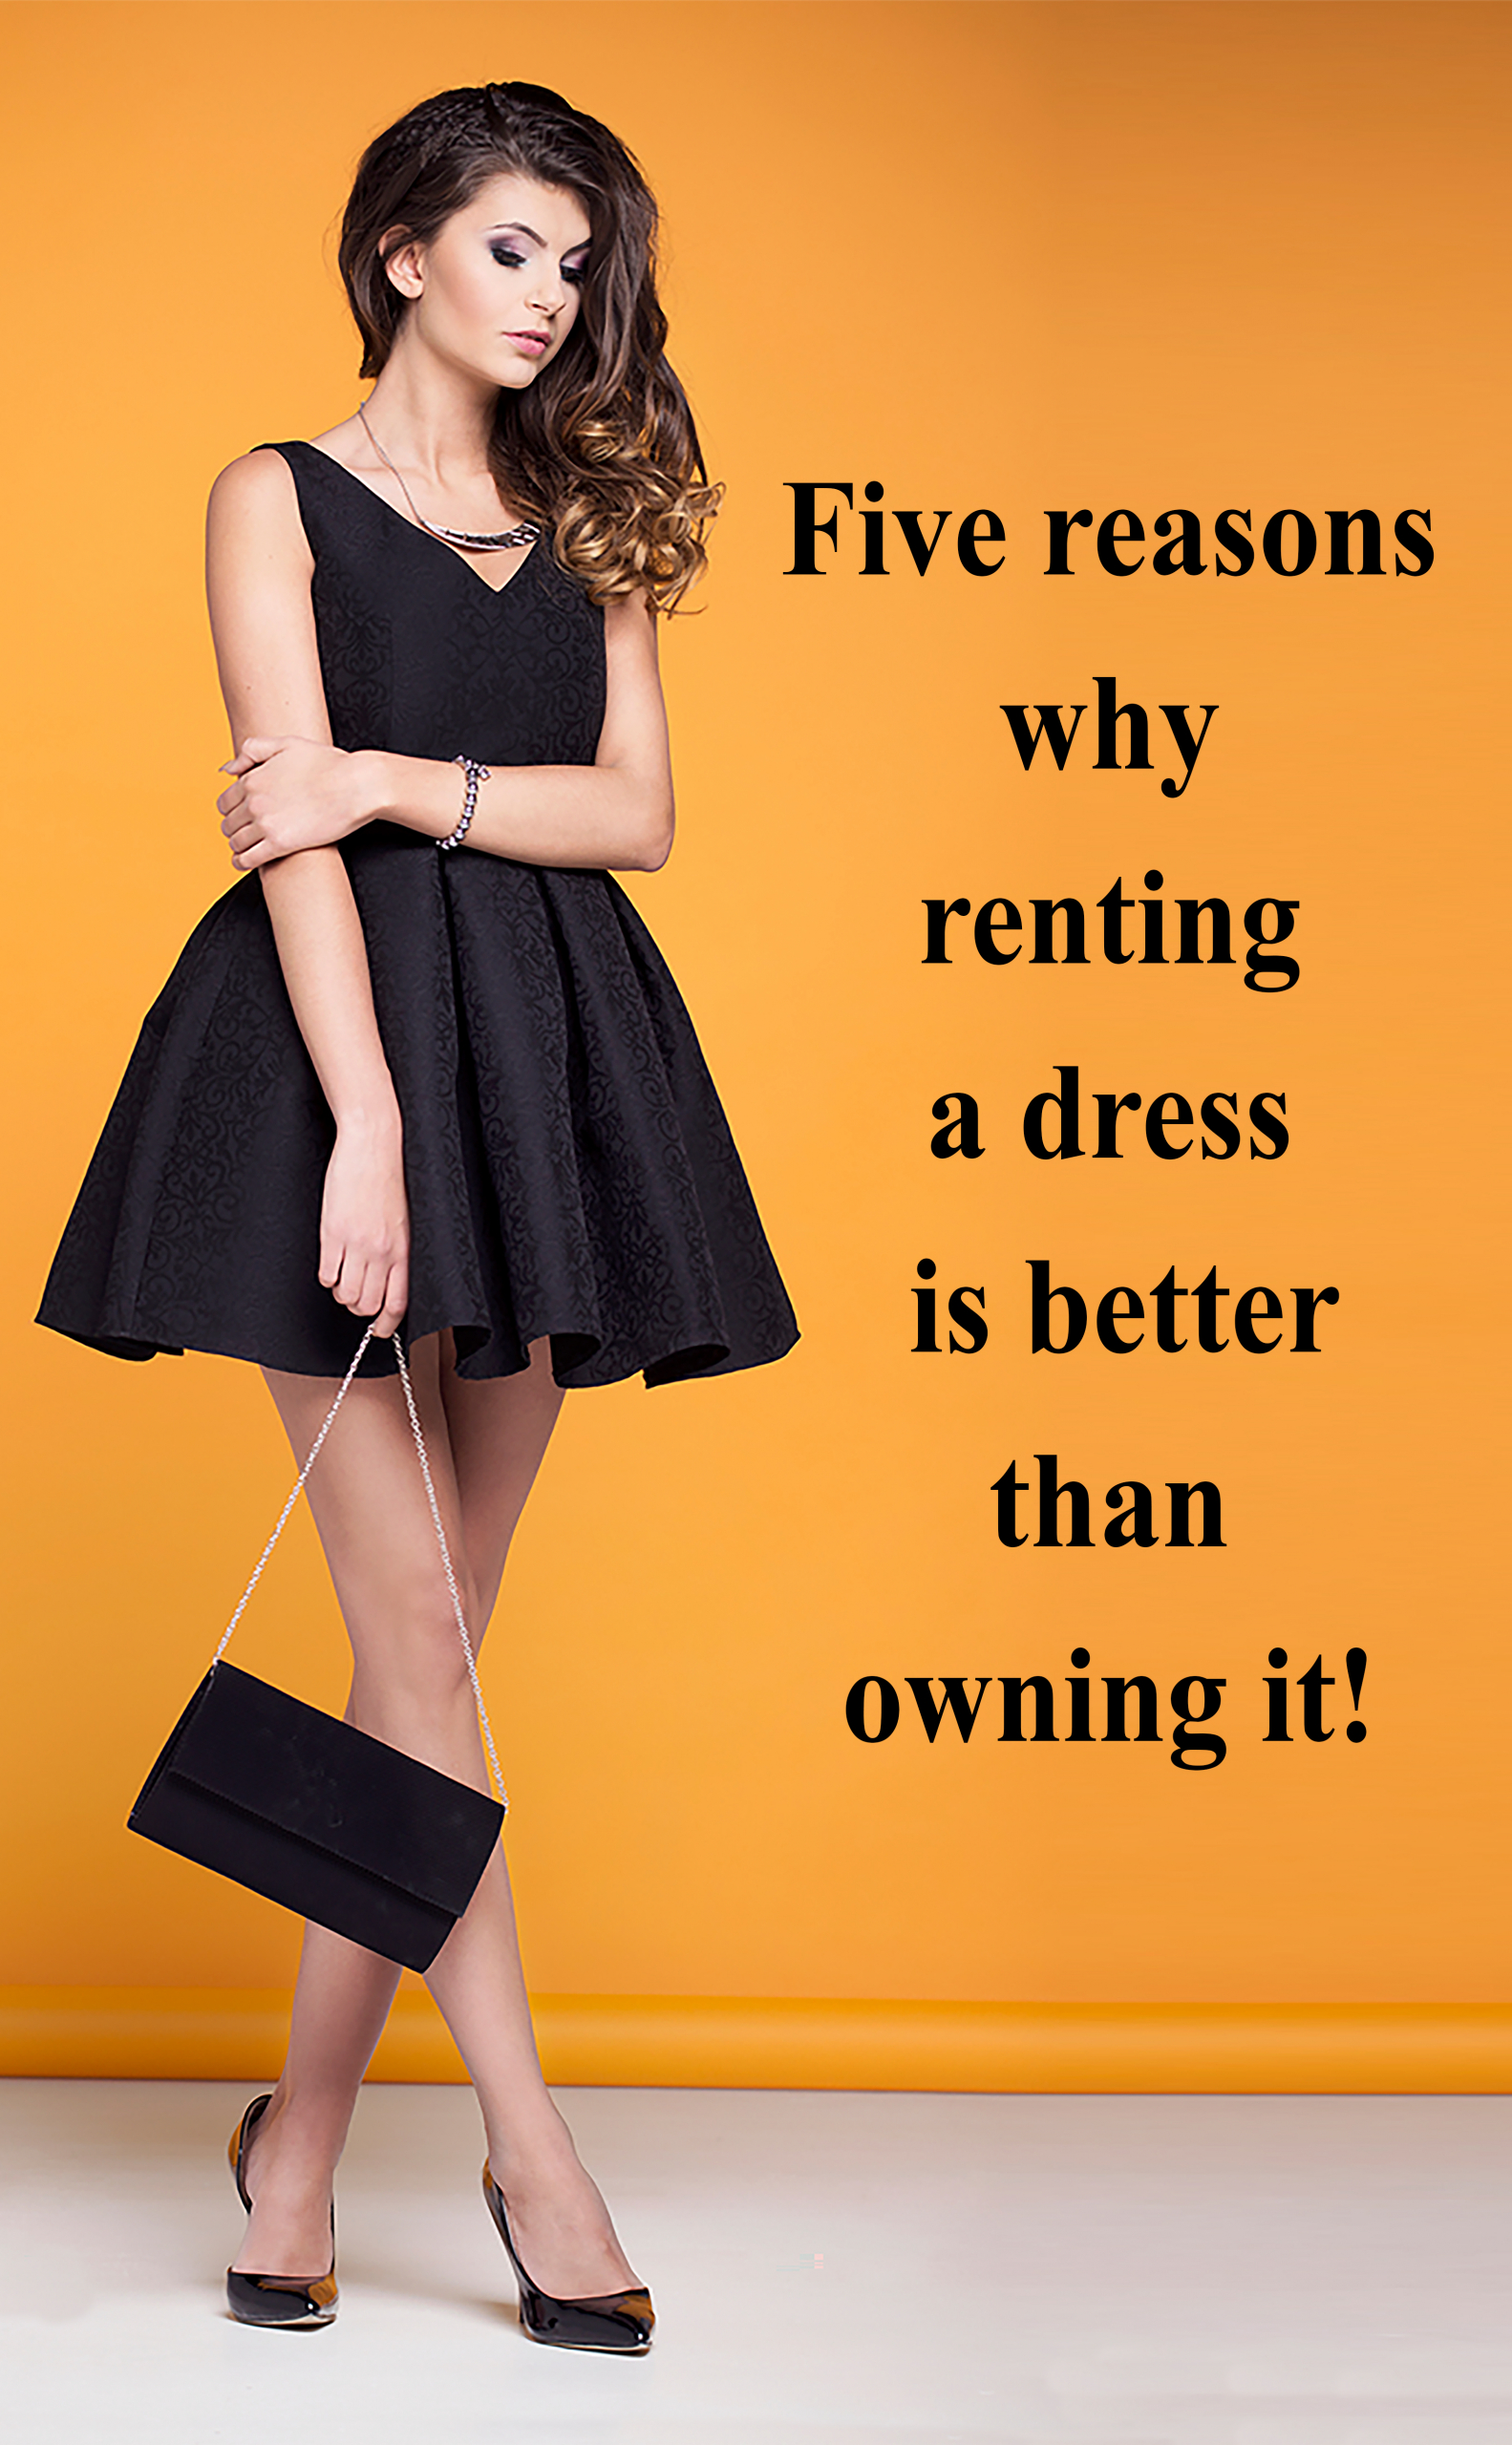 5 reasons why renting a dress in Lebanon is better than buying it